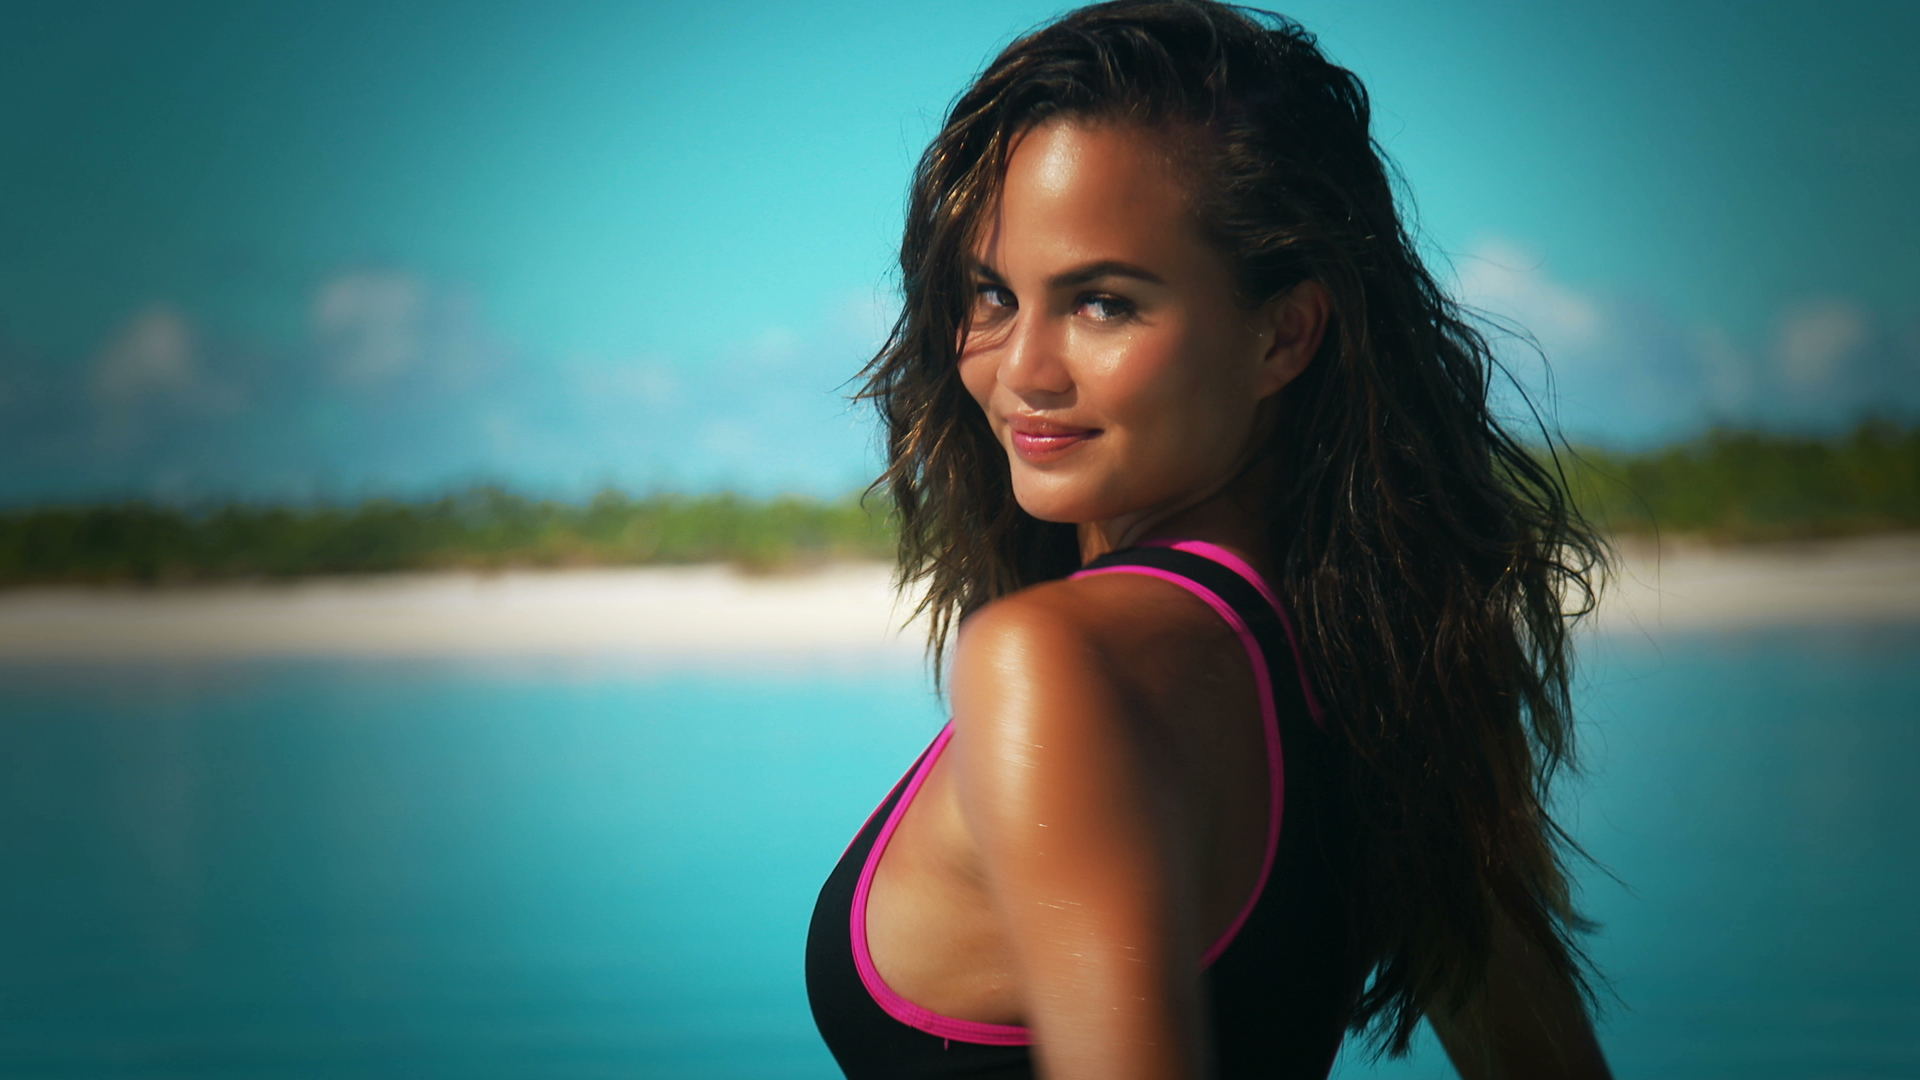 Chrissy Teigen High Quality Wallpapers